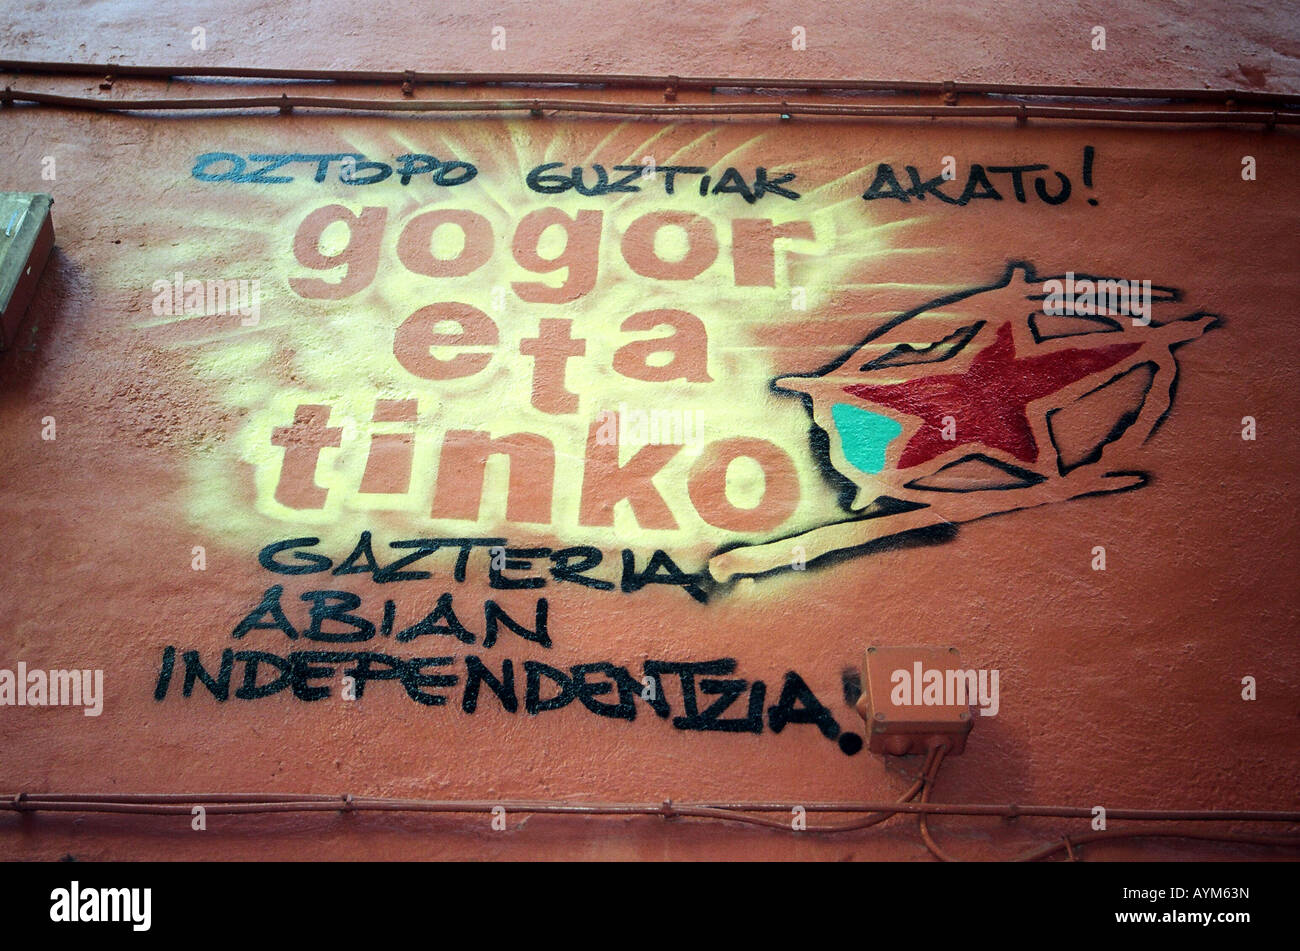 Graffiti supporting Basque Independence from Spain on a wall in ...